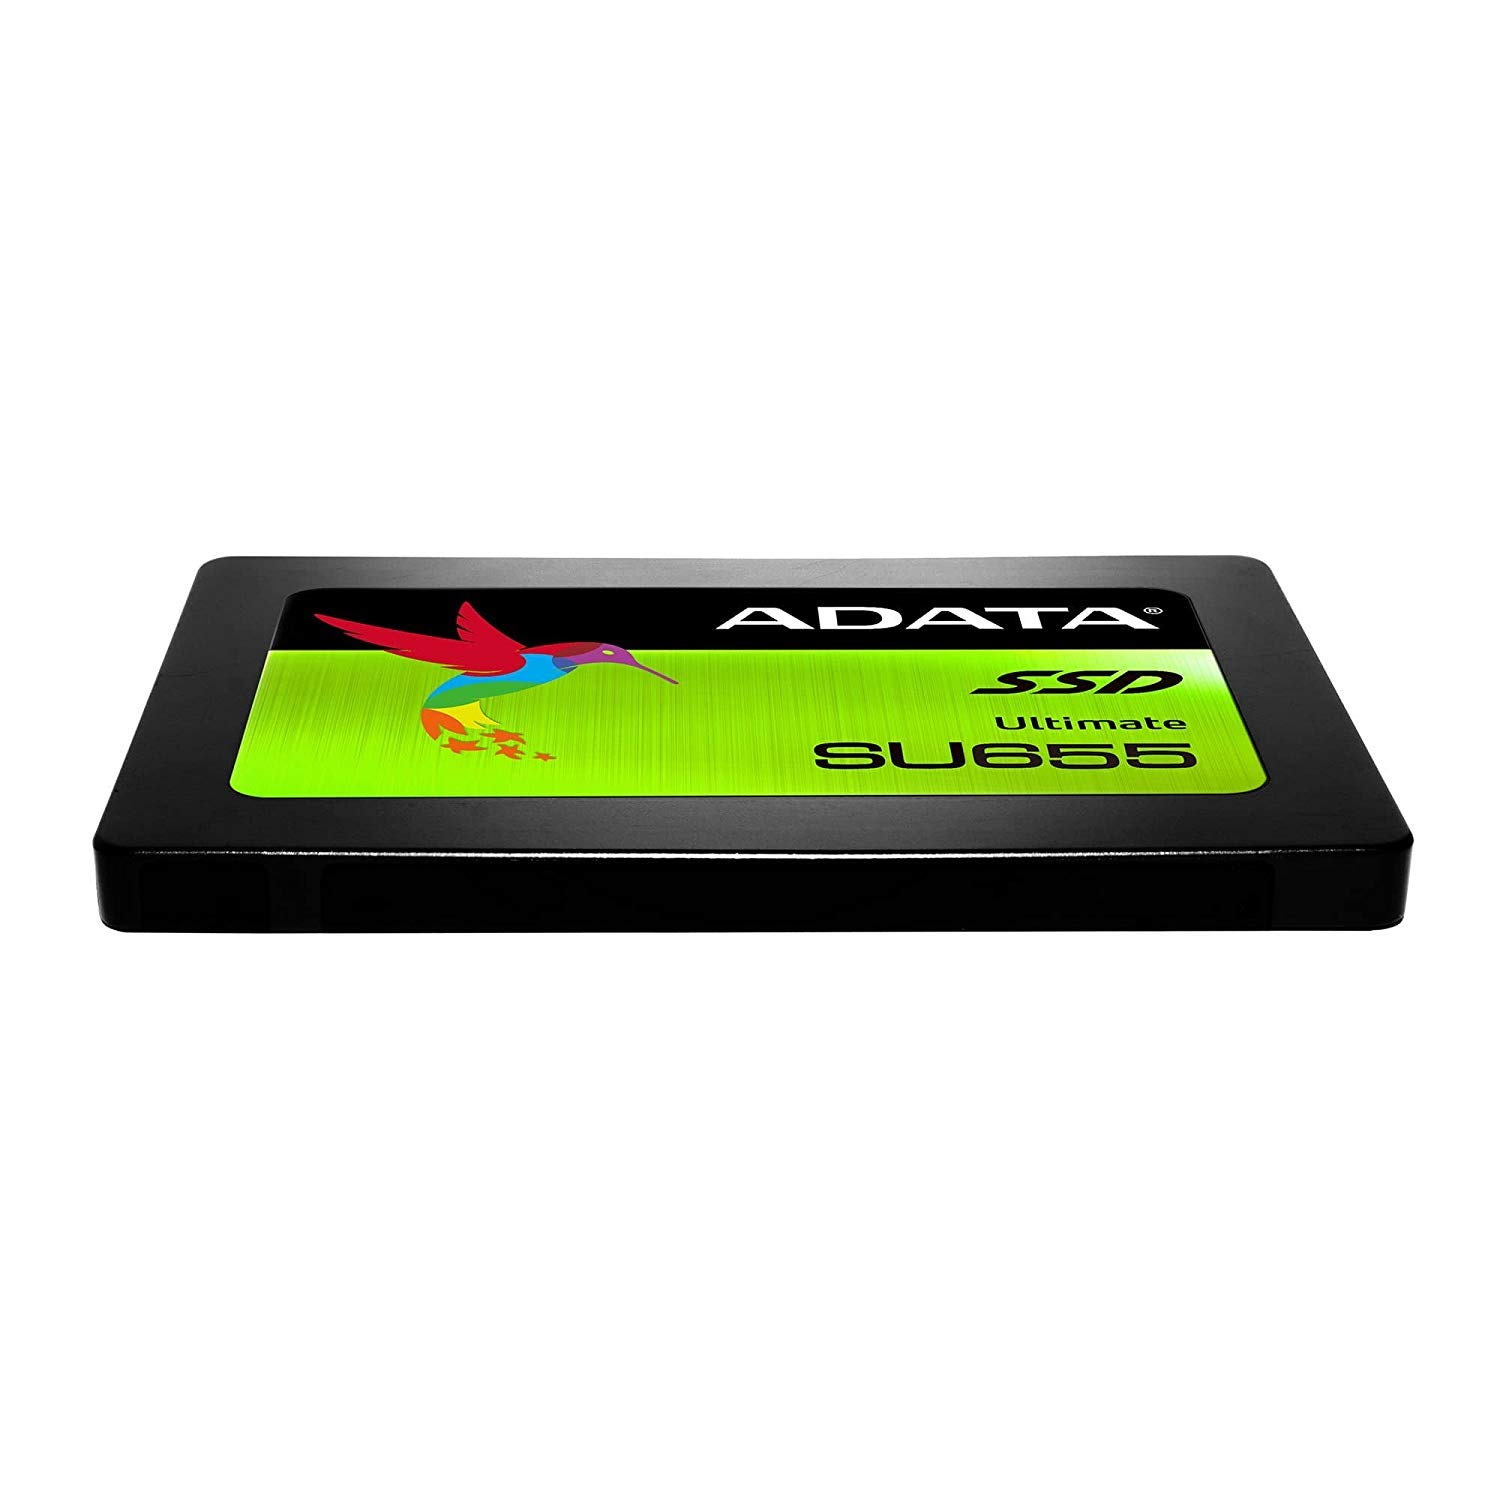 ADATA SU655 960GB 3D NAND 2.5 Inch SATA III High Speed Read Up to 520MB/S Internal SSD (ASU655SS-960GT-C) by ADATA (Image #3)